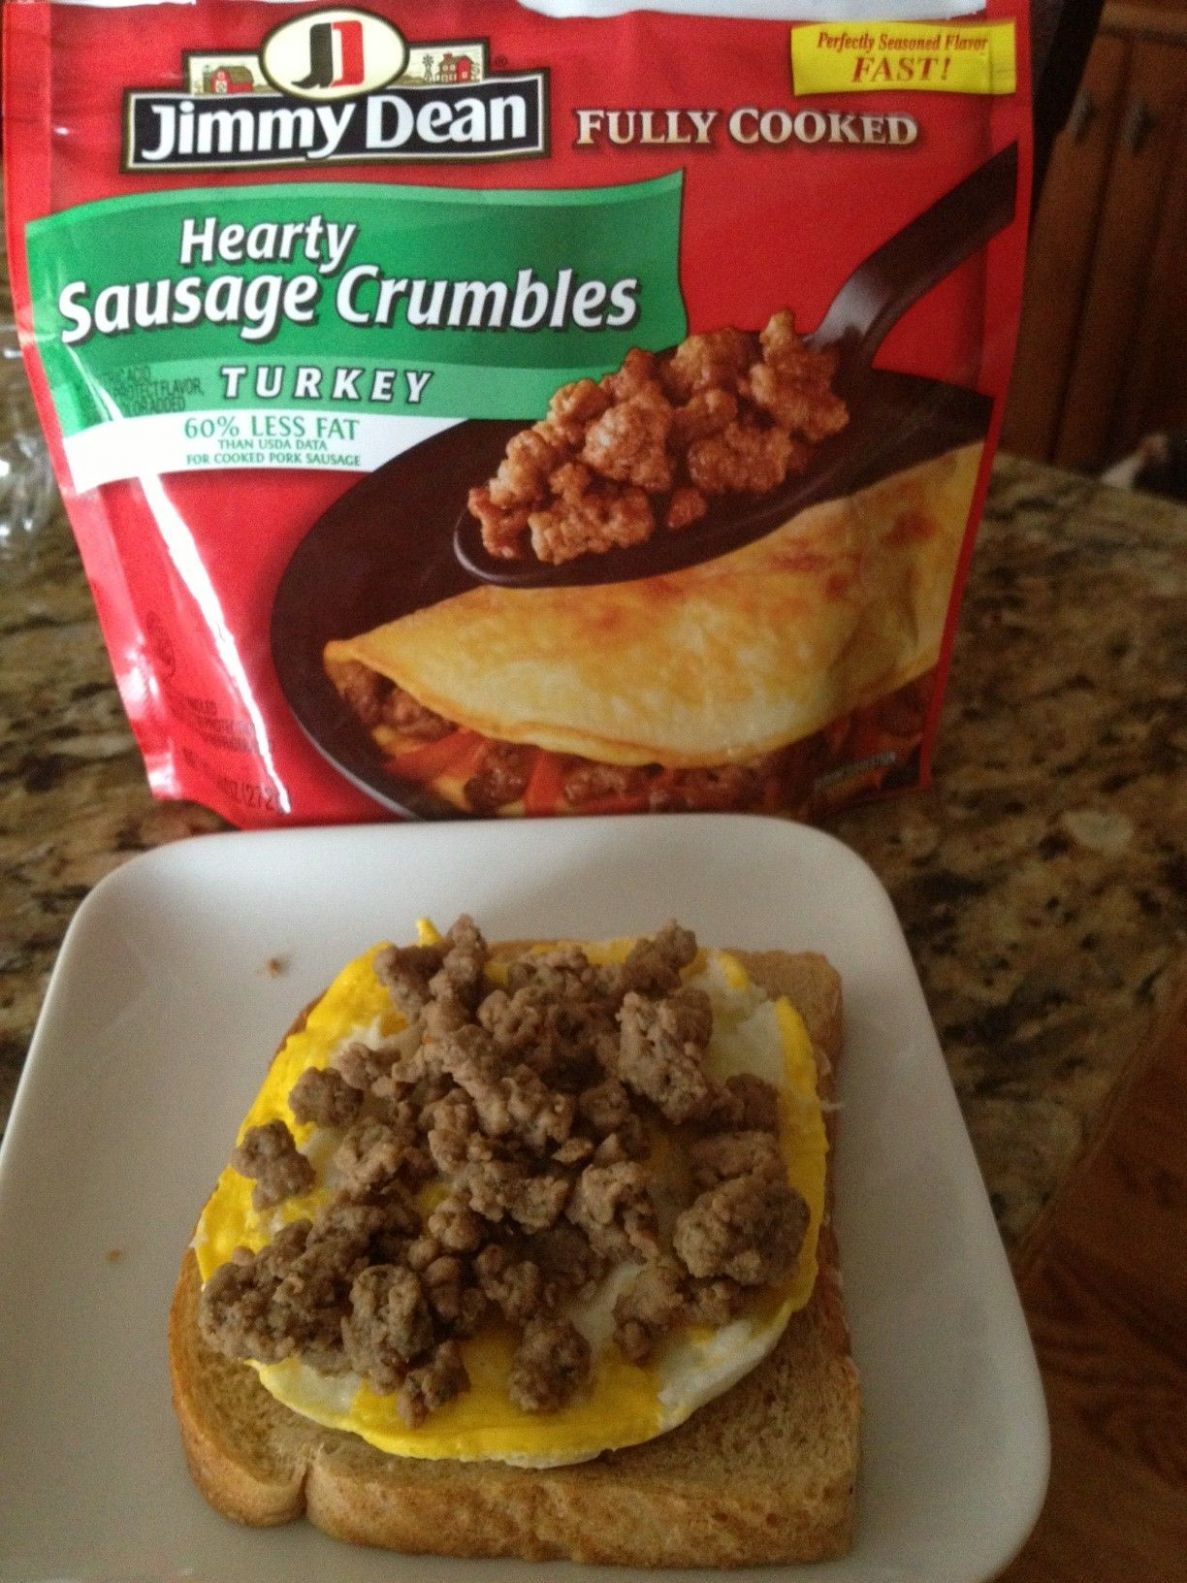 Jimmy Dean Fully Cooked Hearty Sausage Crumbles - Turkey - News ..